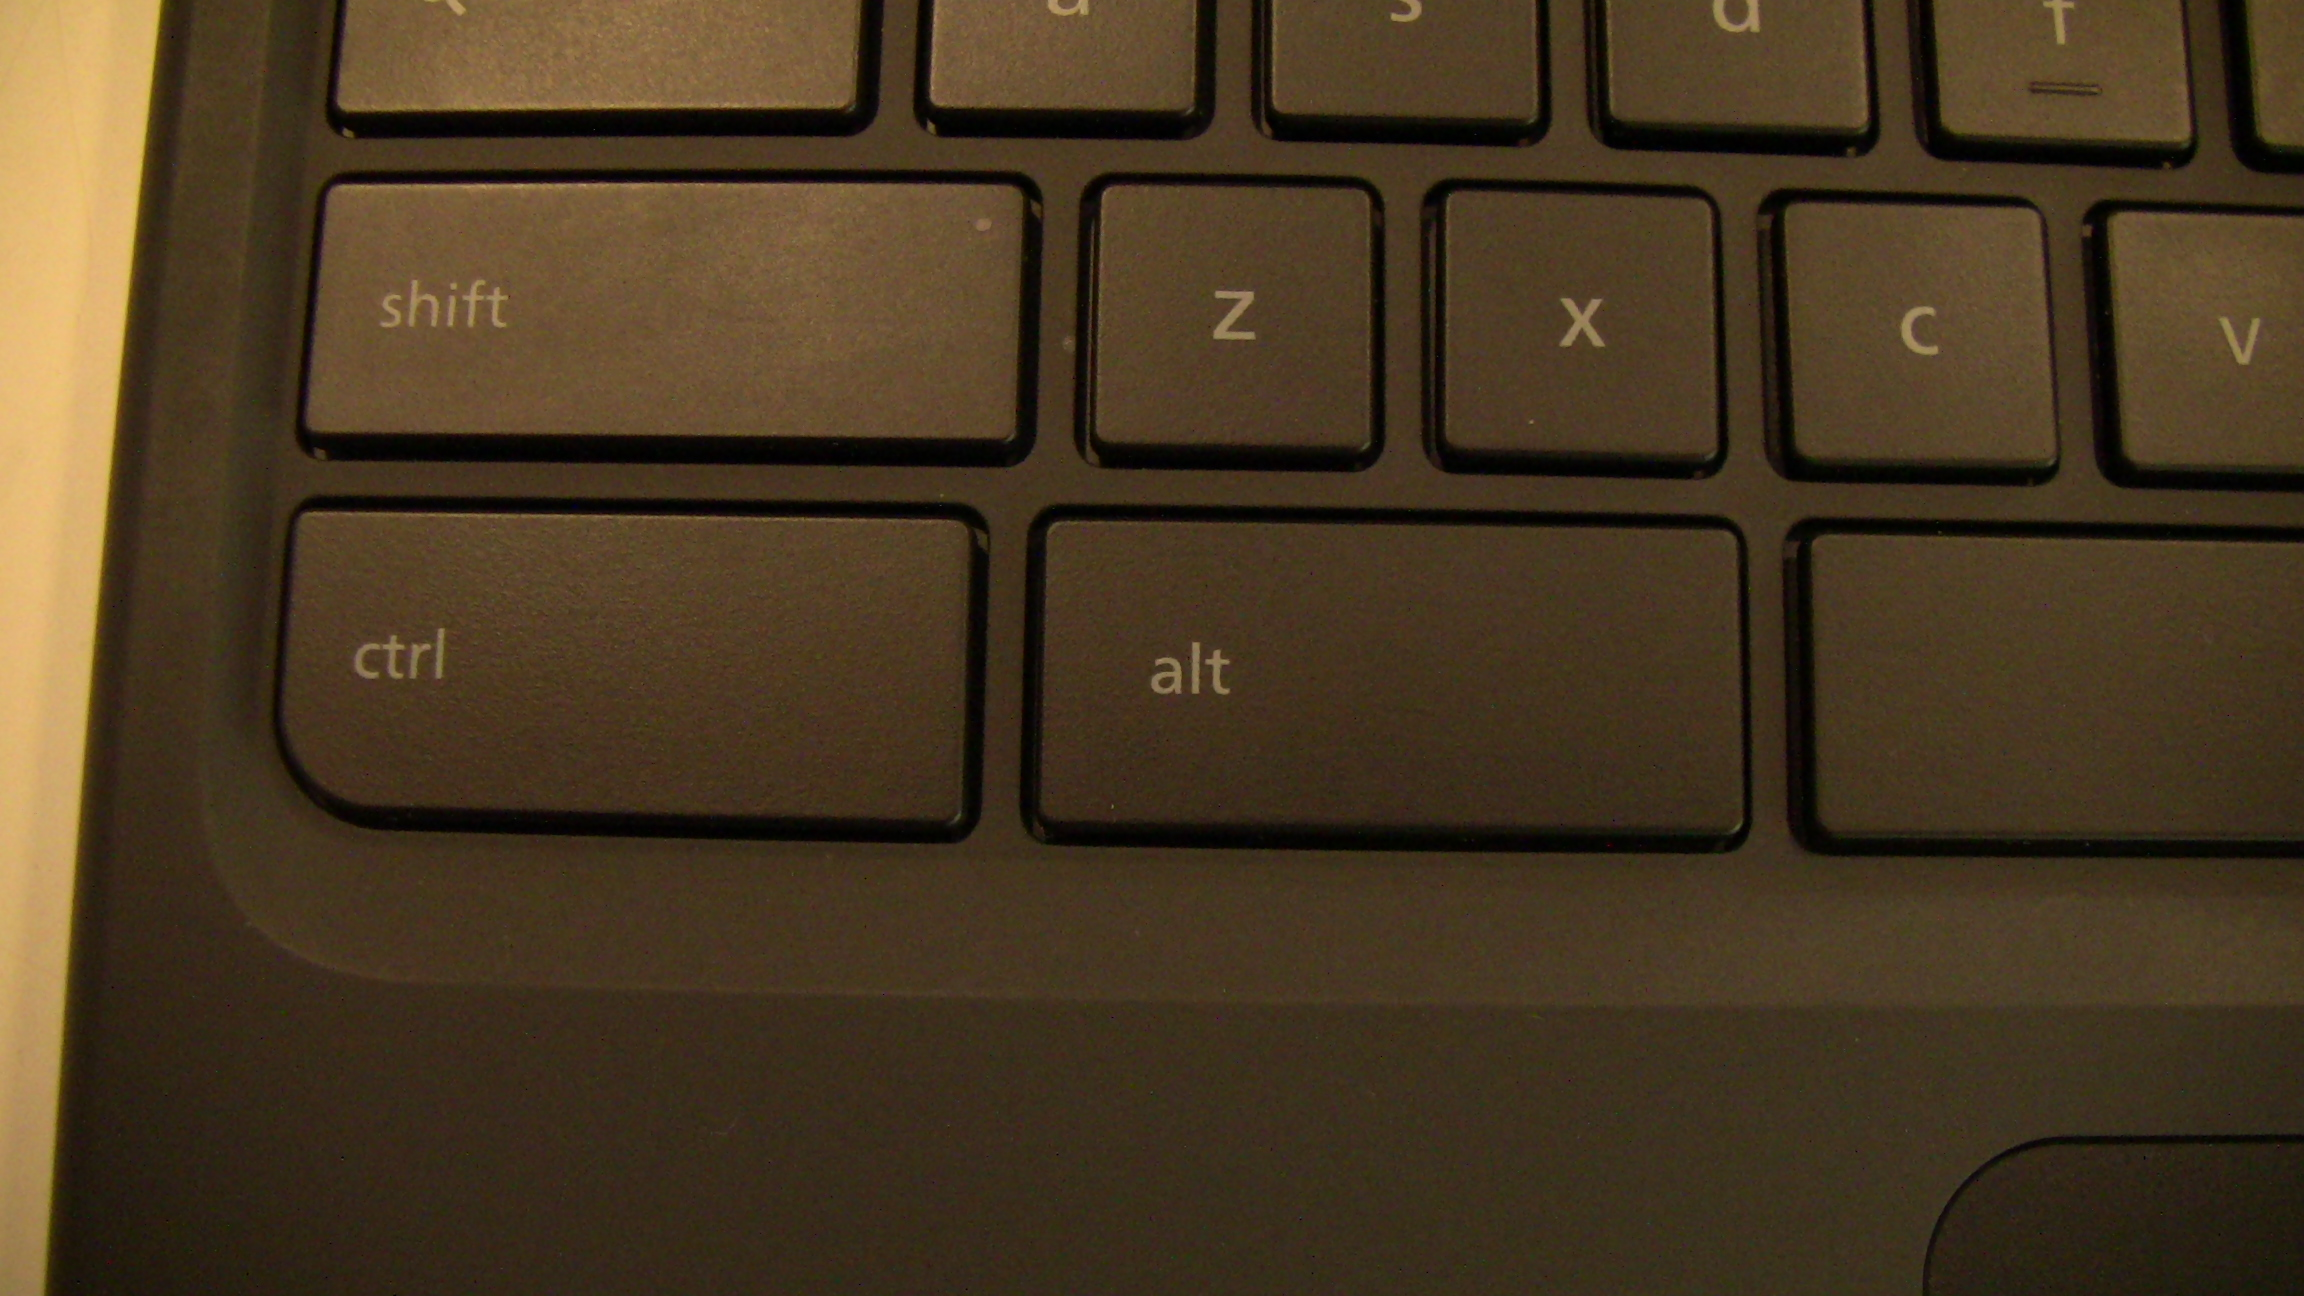 Cr-48 Left Side Ctrl & Alt Keys